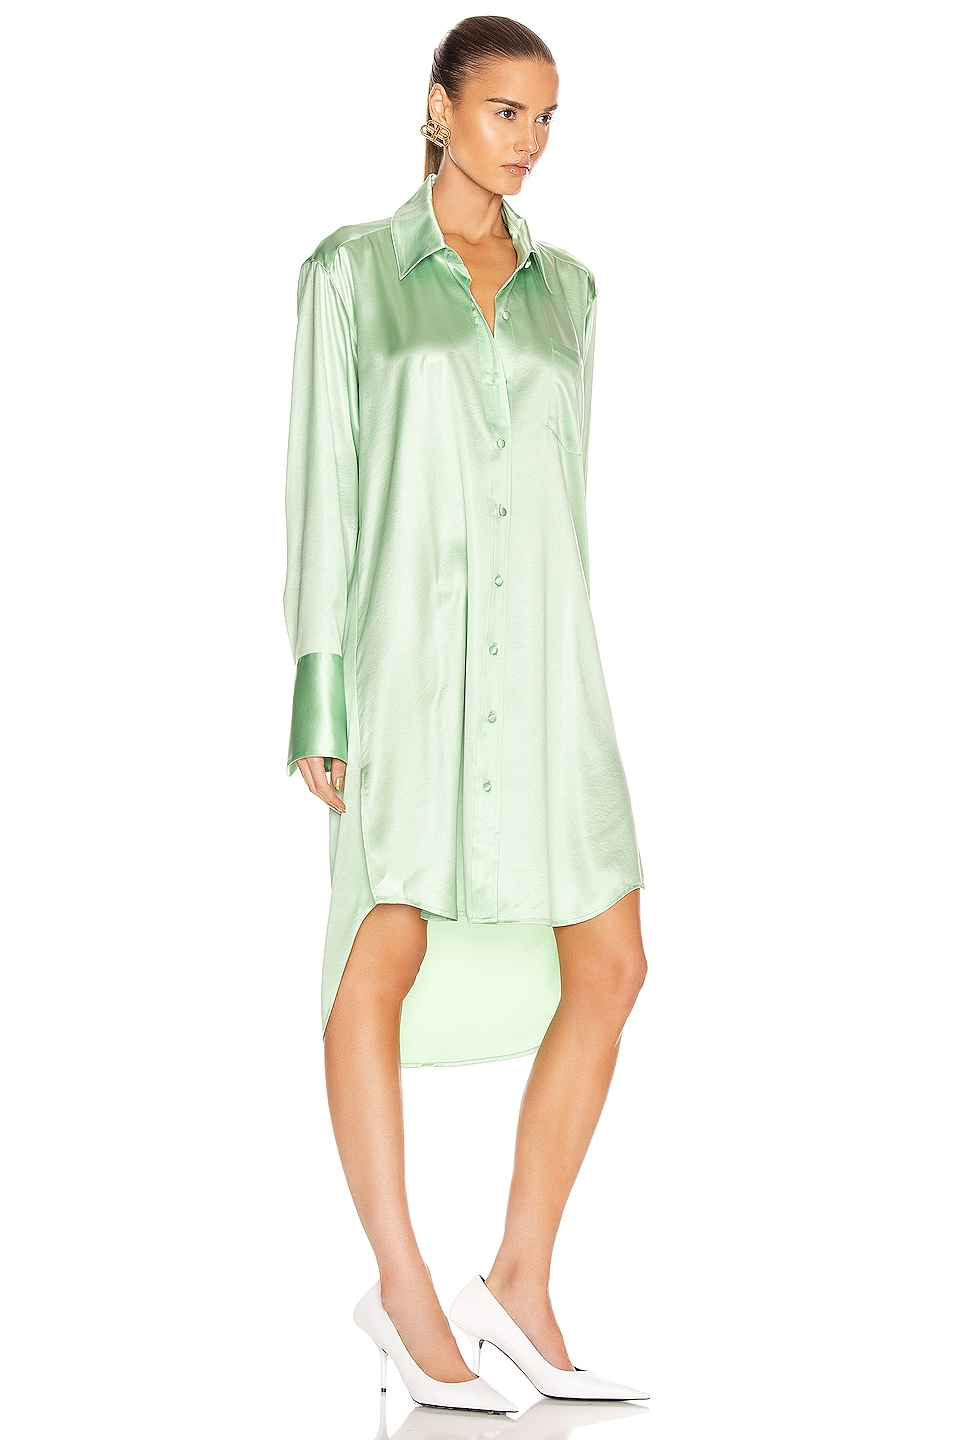 Image 2 of T by Alexander Wang Wet Shine Wash & Go Button Down Dress in Mint